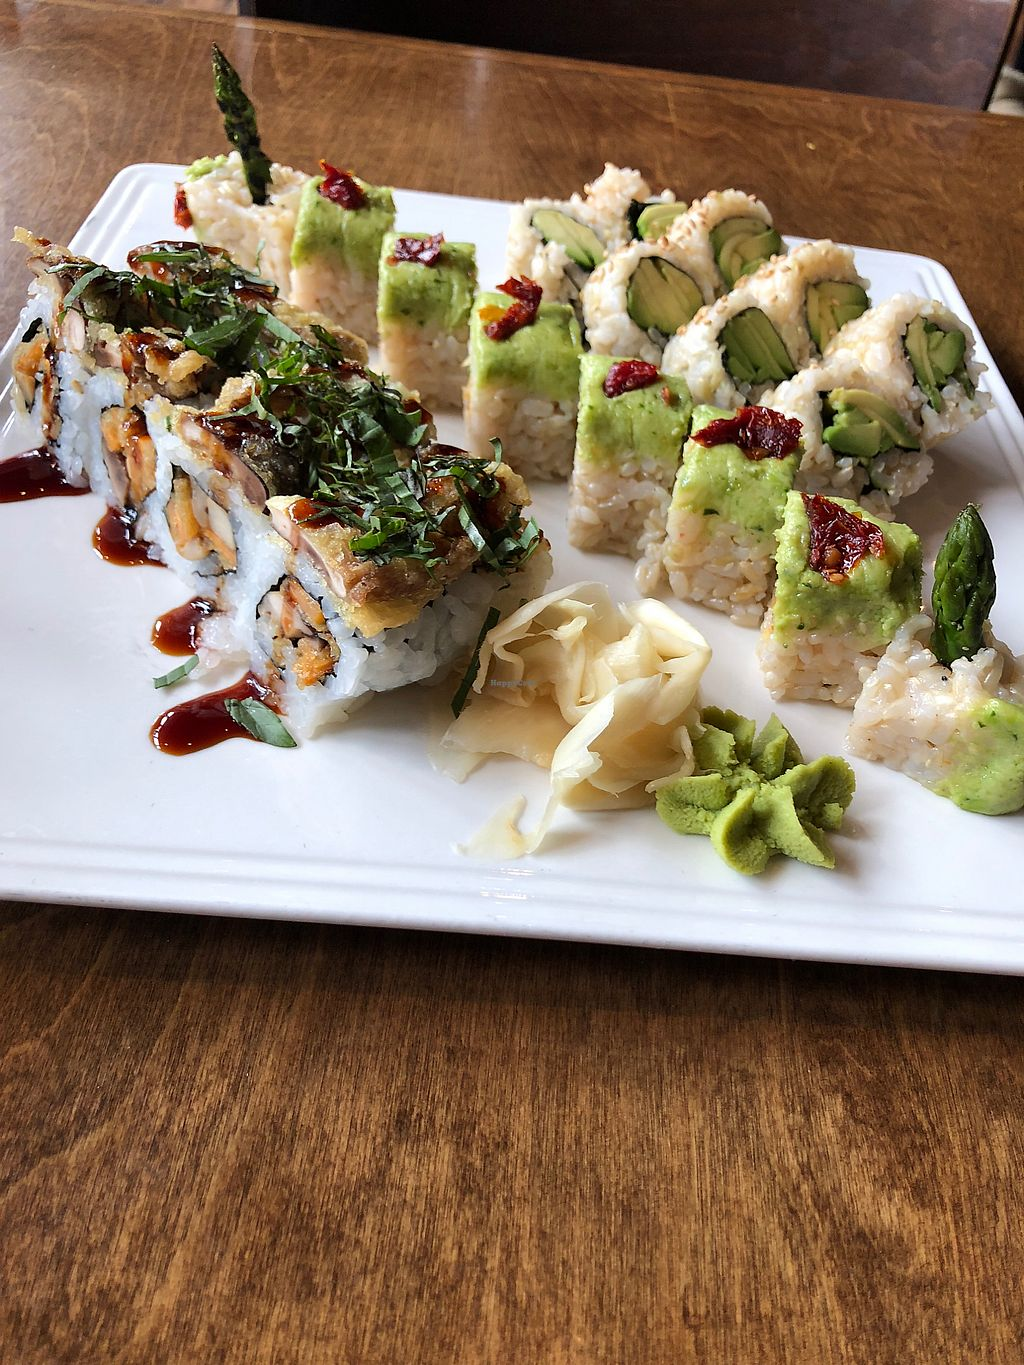 """Photo of Blue Sushi Sake Grill  by <a href=""""/members/profile/EricaMcMahon"""">EricaMcMahon</a> <br/>Three vegan sushi rolls! Shiitake to me, an avocado asparagus, and an avocado :)  <br/> April 6, 2018  - <a href='/contact/abuse/image/107415/381686'>Report</a>"""